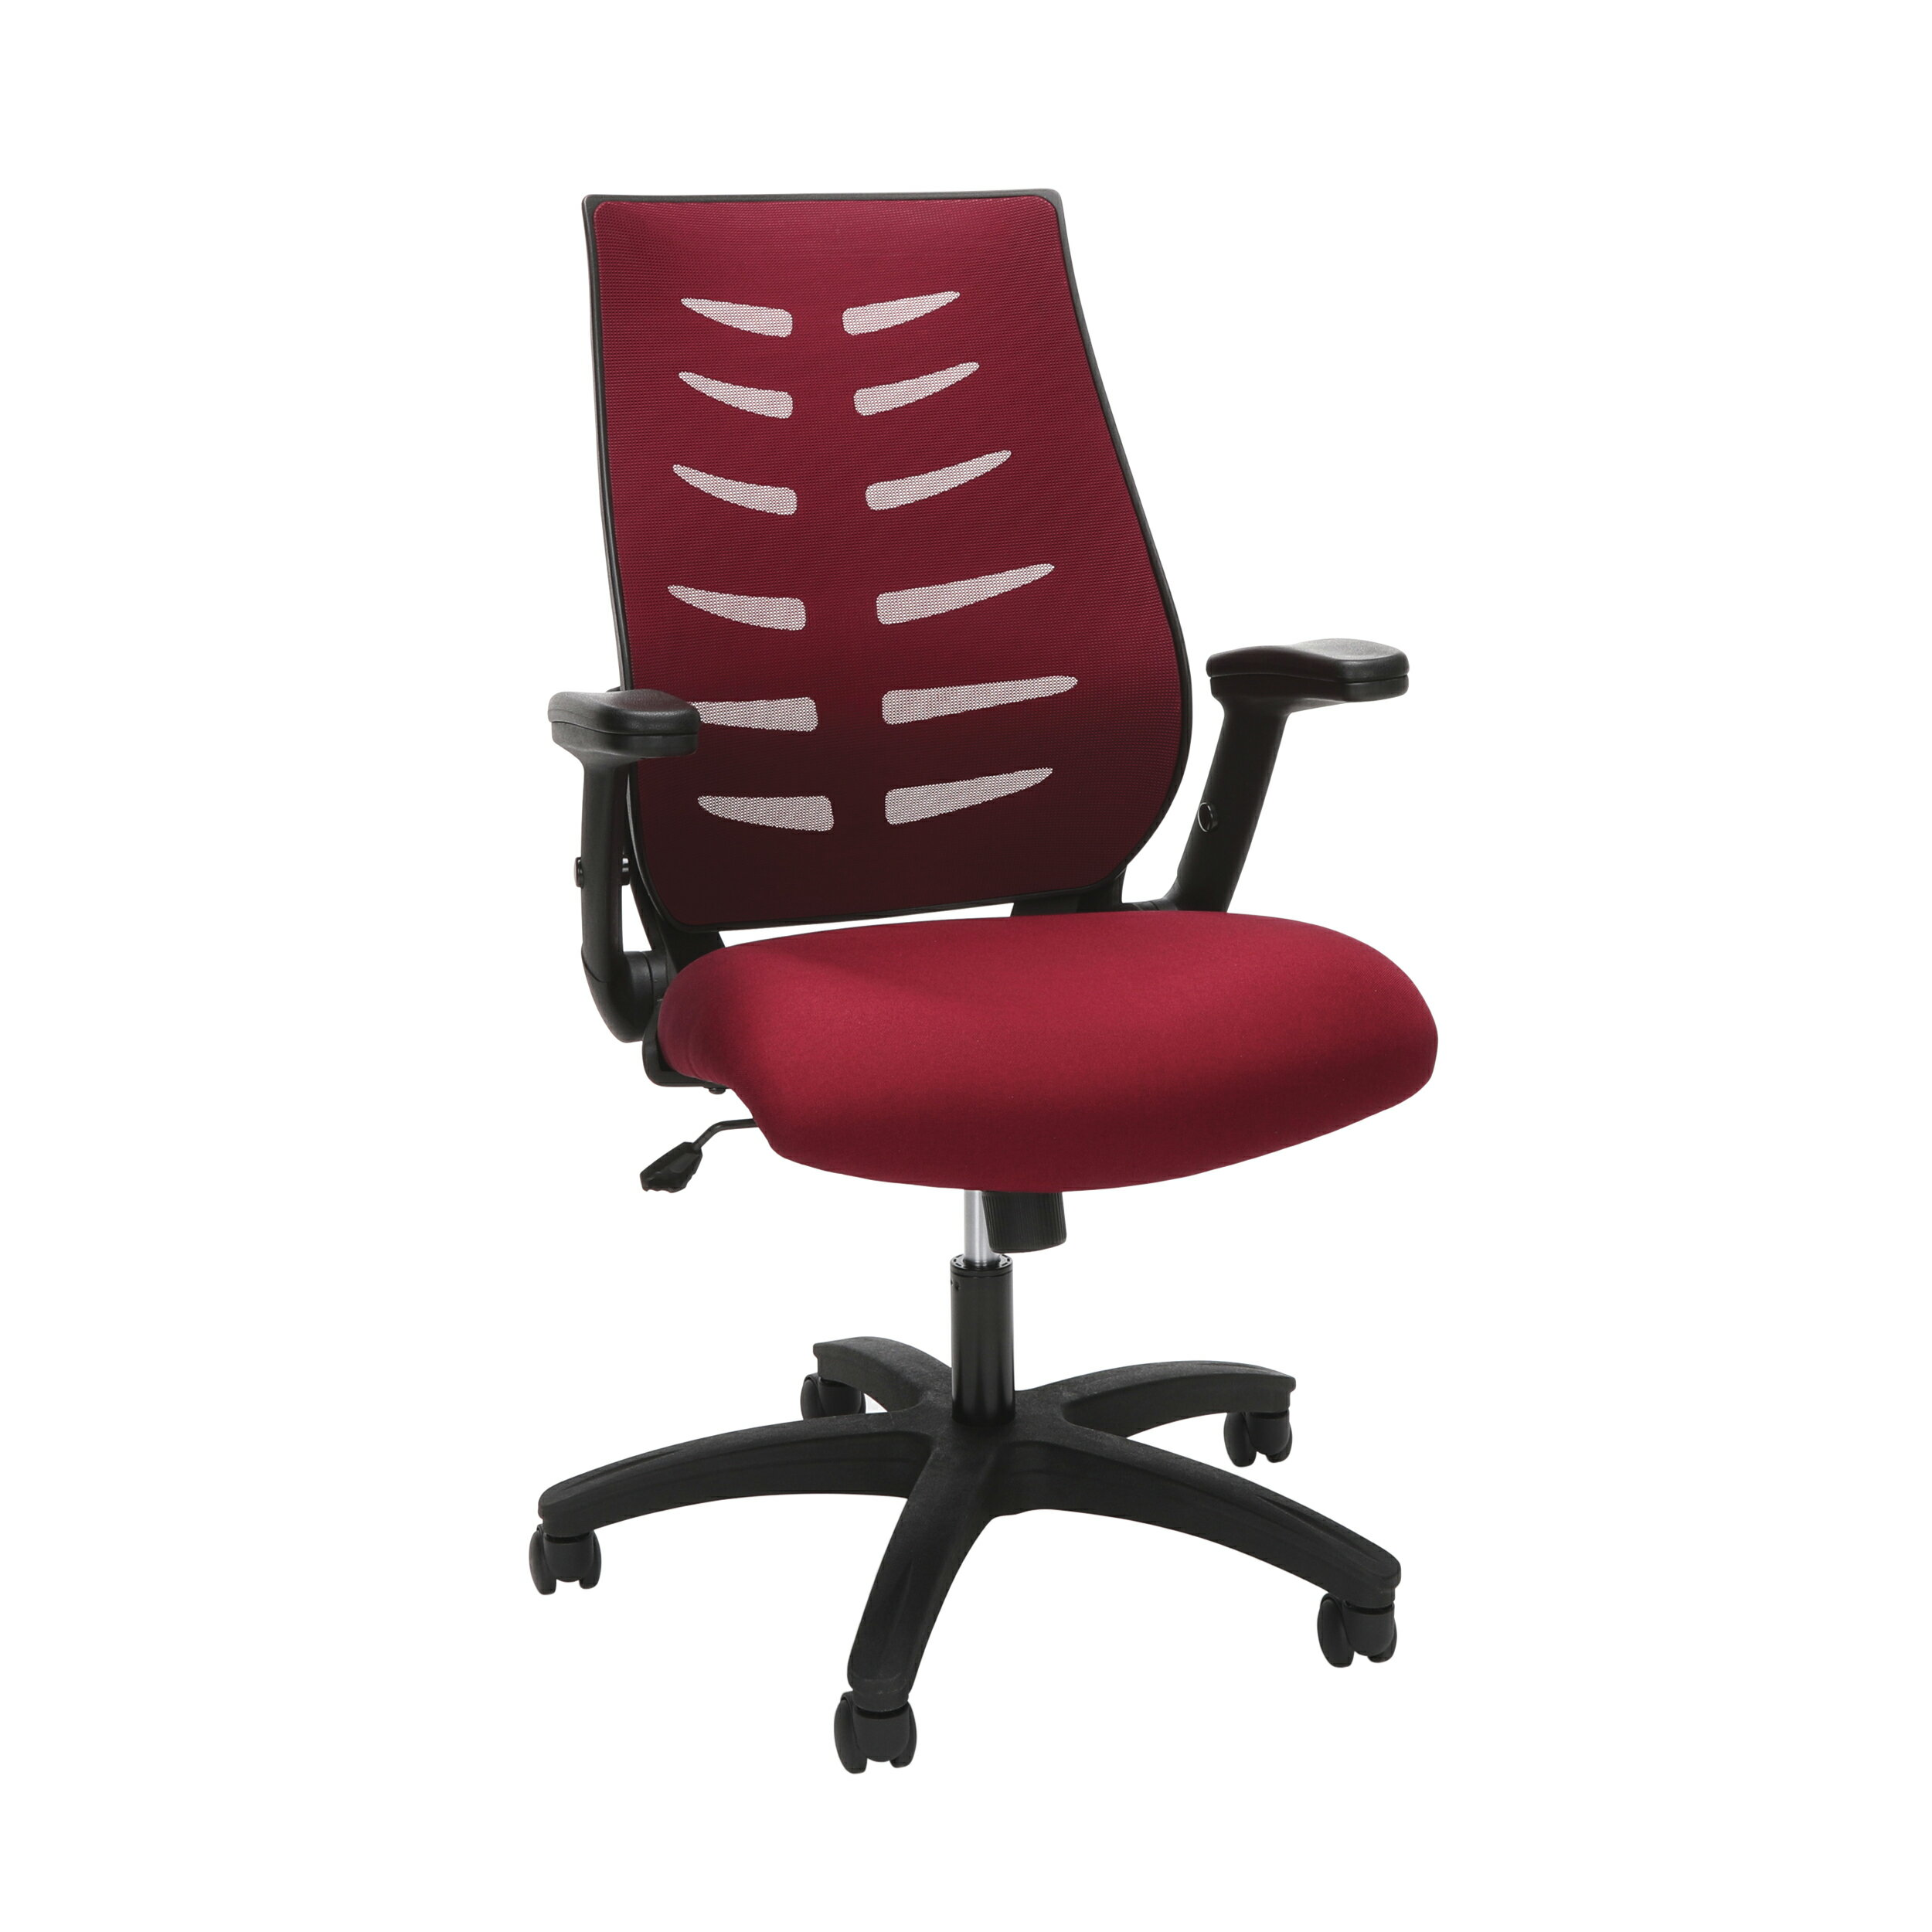 Astounding Ofm Model 530 Burg Core Collection Midback Mesh Office Chair For Computer Desk Burgundy Machost Co Dining Chair Design Ideas Machostcouk